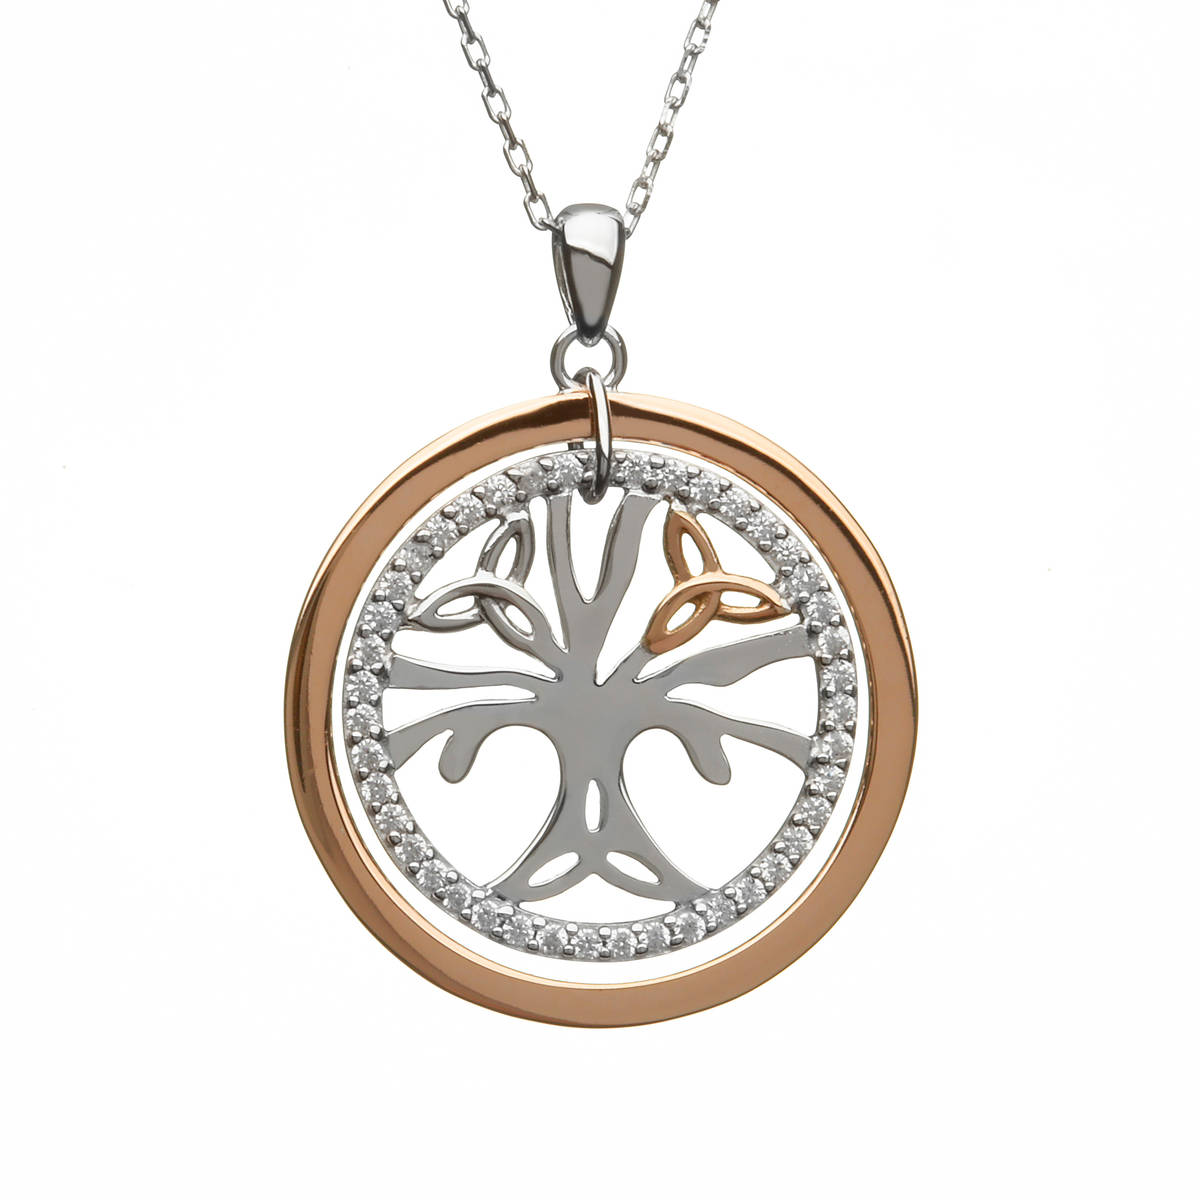 House of Lor silver/rose Tree of Life cz pendant made from rare Irish gold